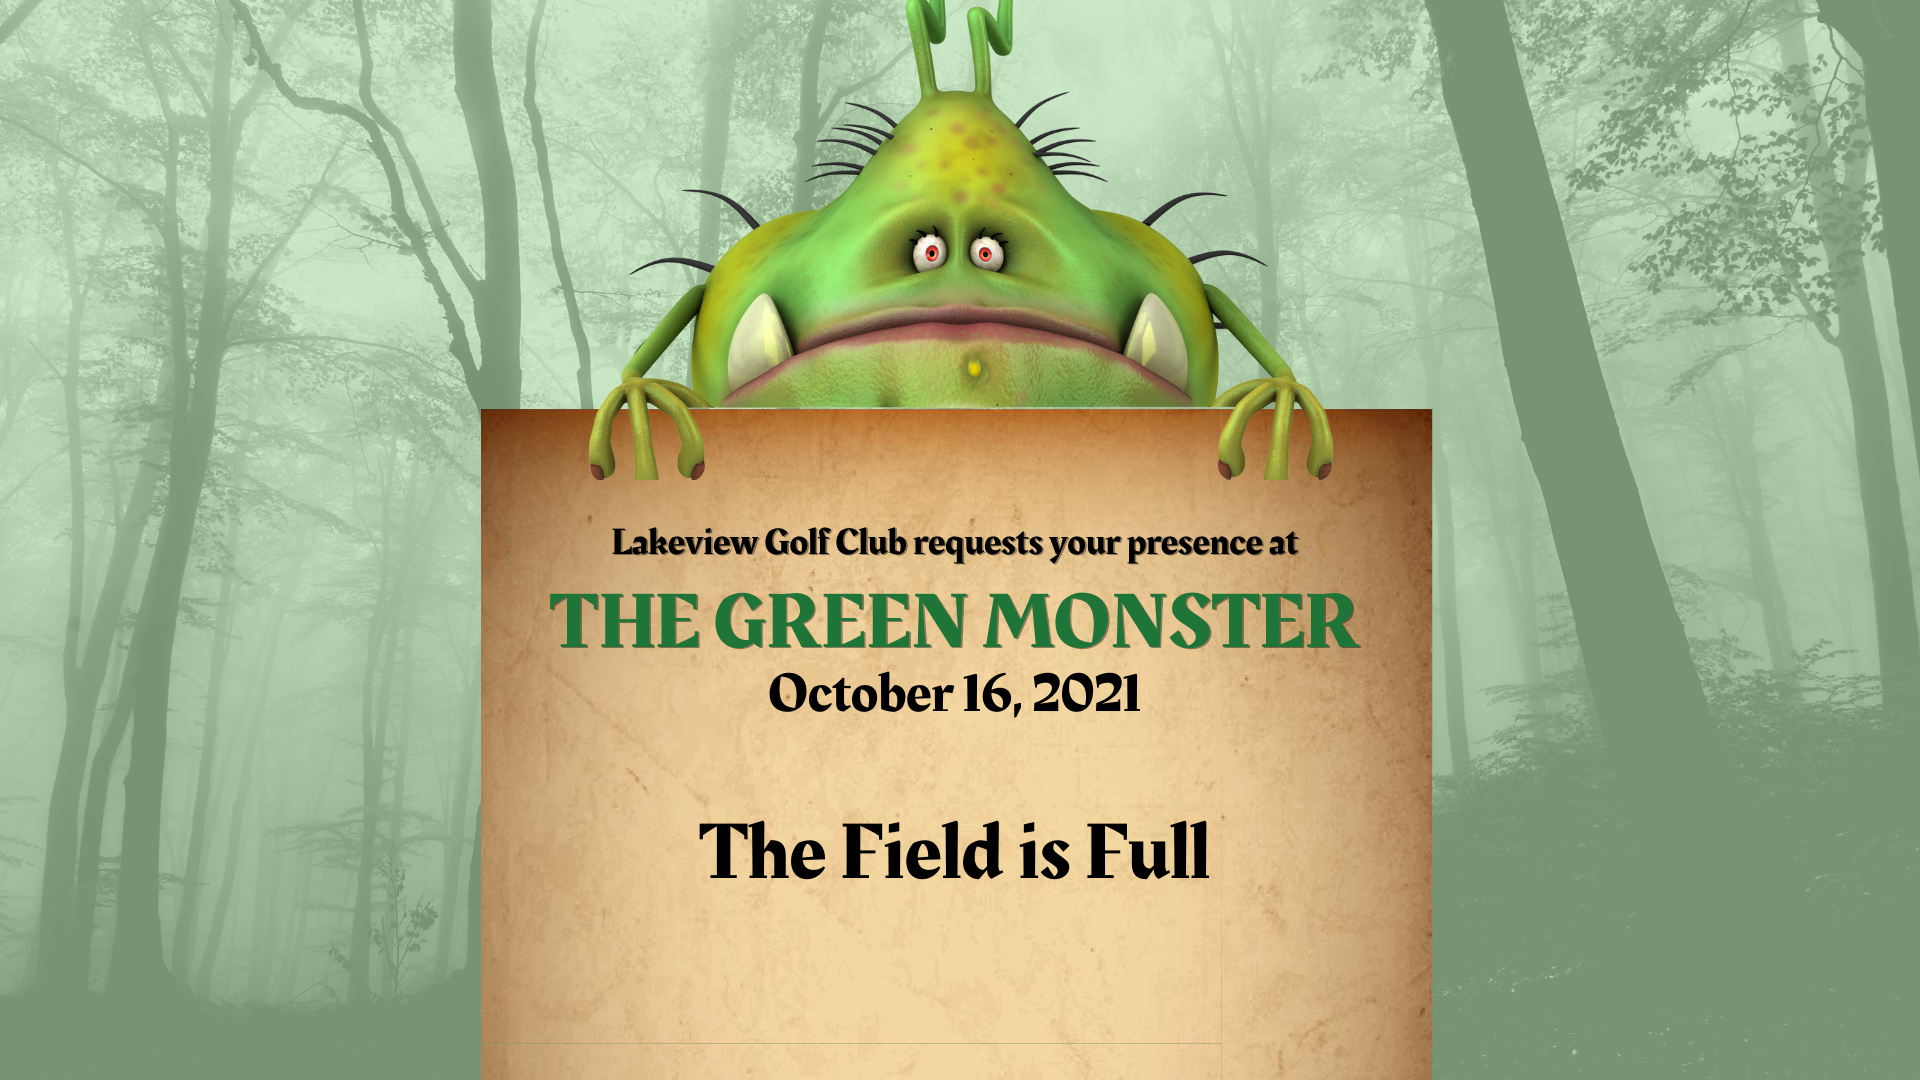 The Green Monster is Back!